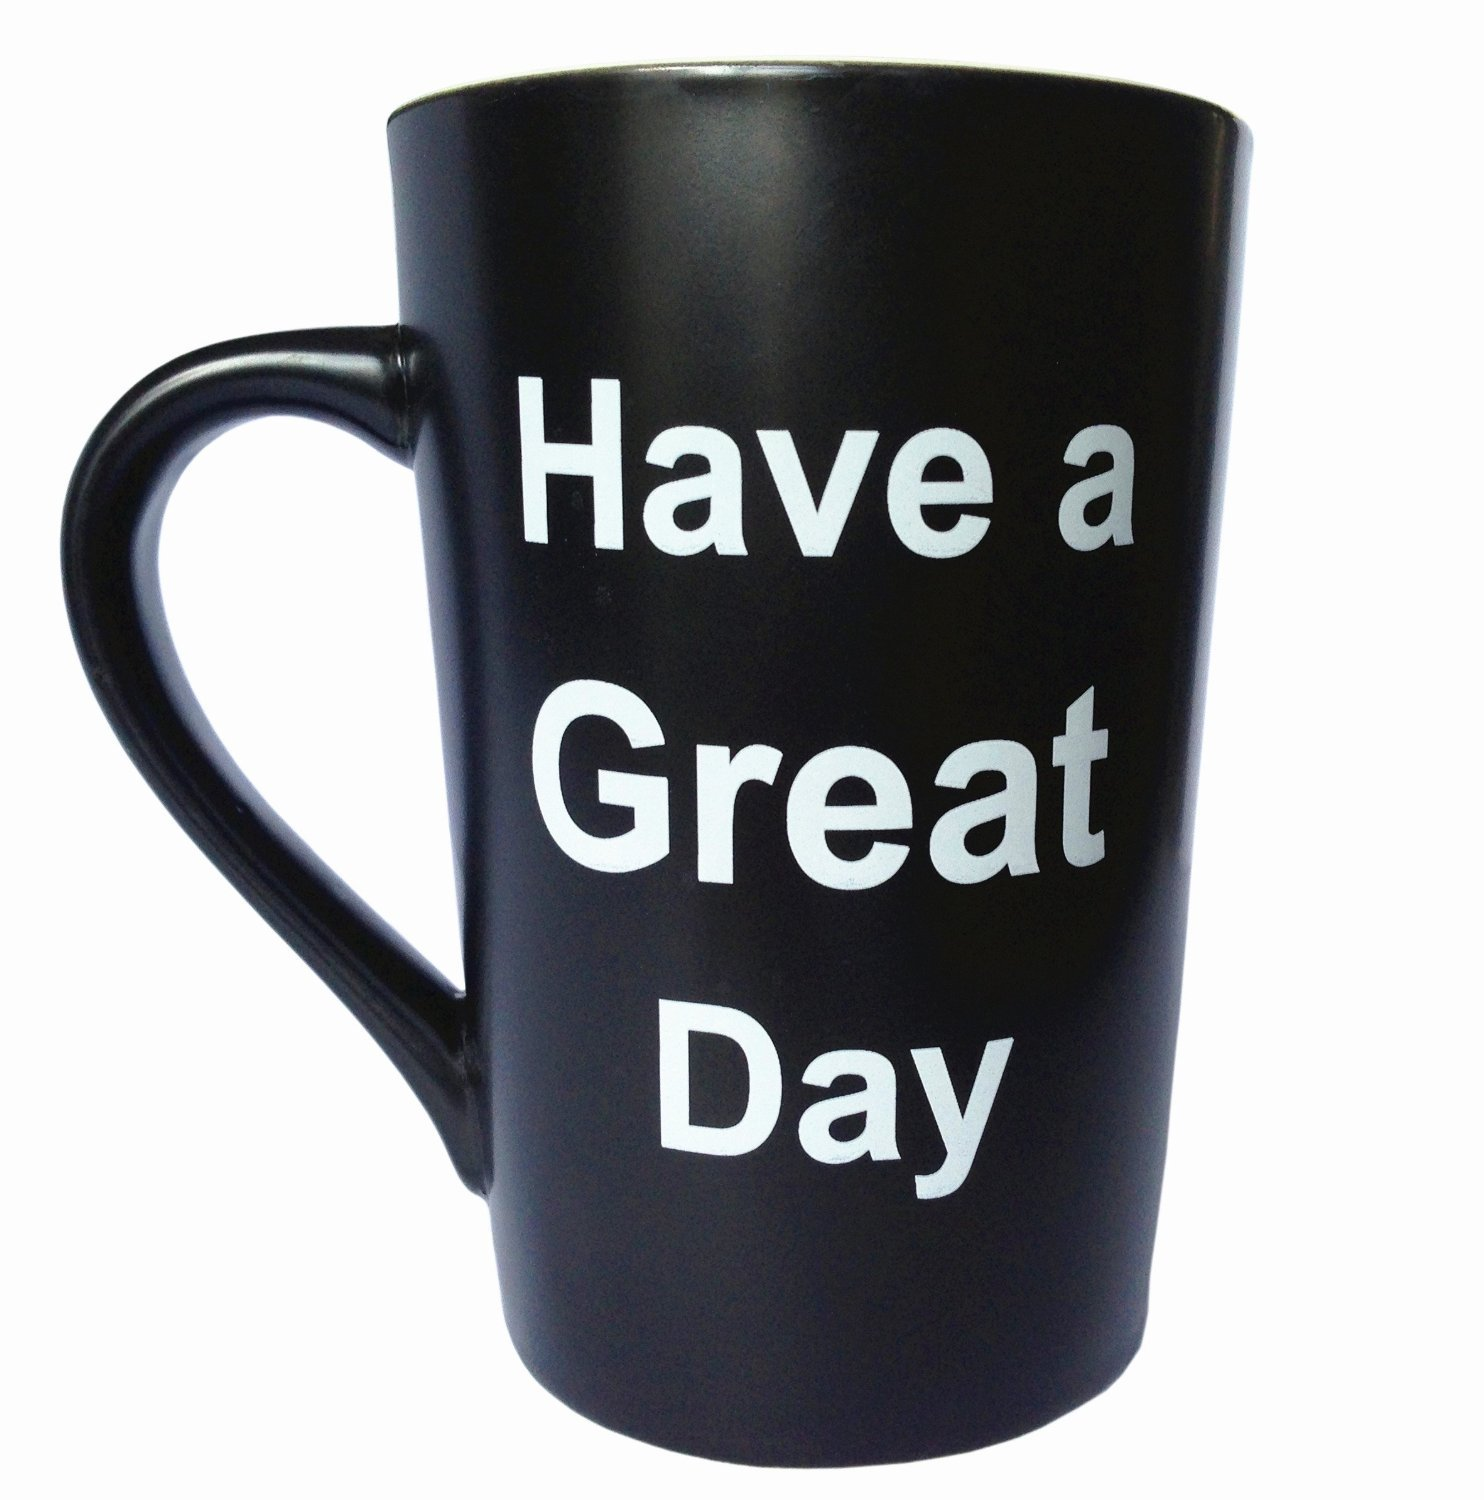 MAUAG Funny Unique Coffee Mugs - Have a Great Day Cute Cool Ceramic Cup Black, Best Holiday and Christmas Gag Gifts, 12 Oz by MAUAG (Image #2)